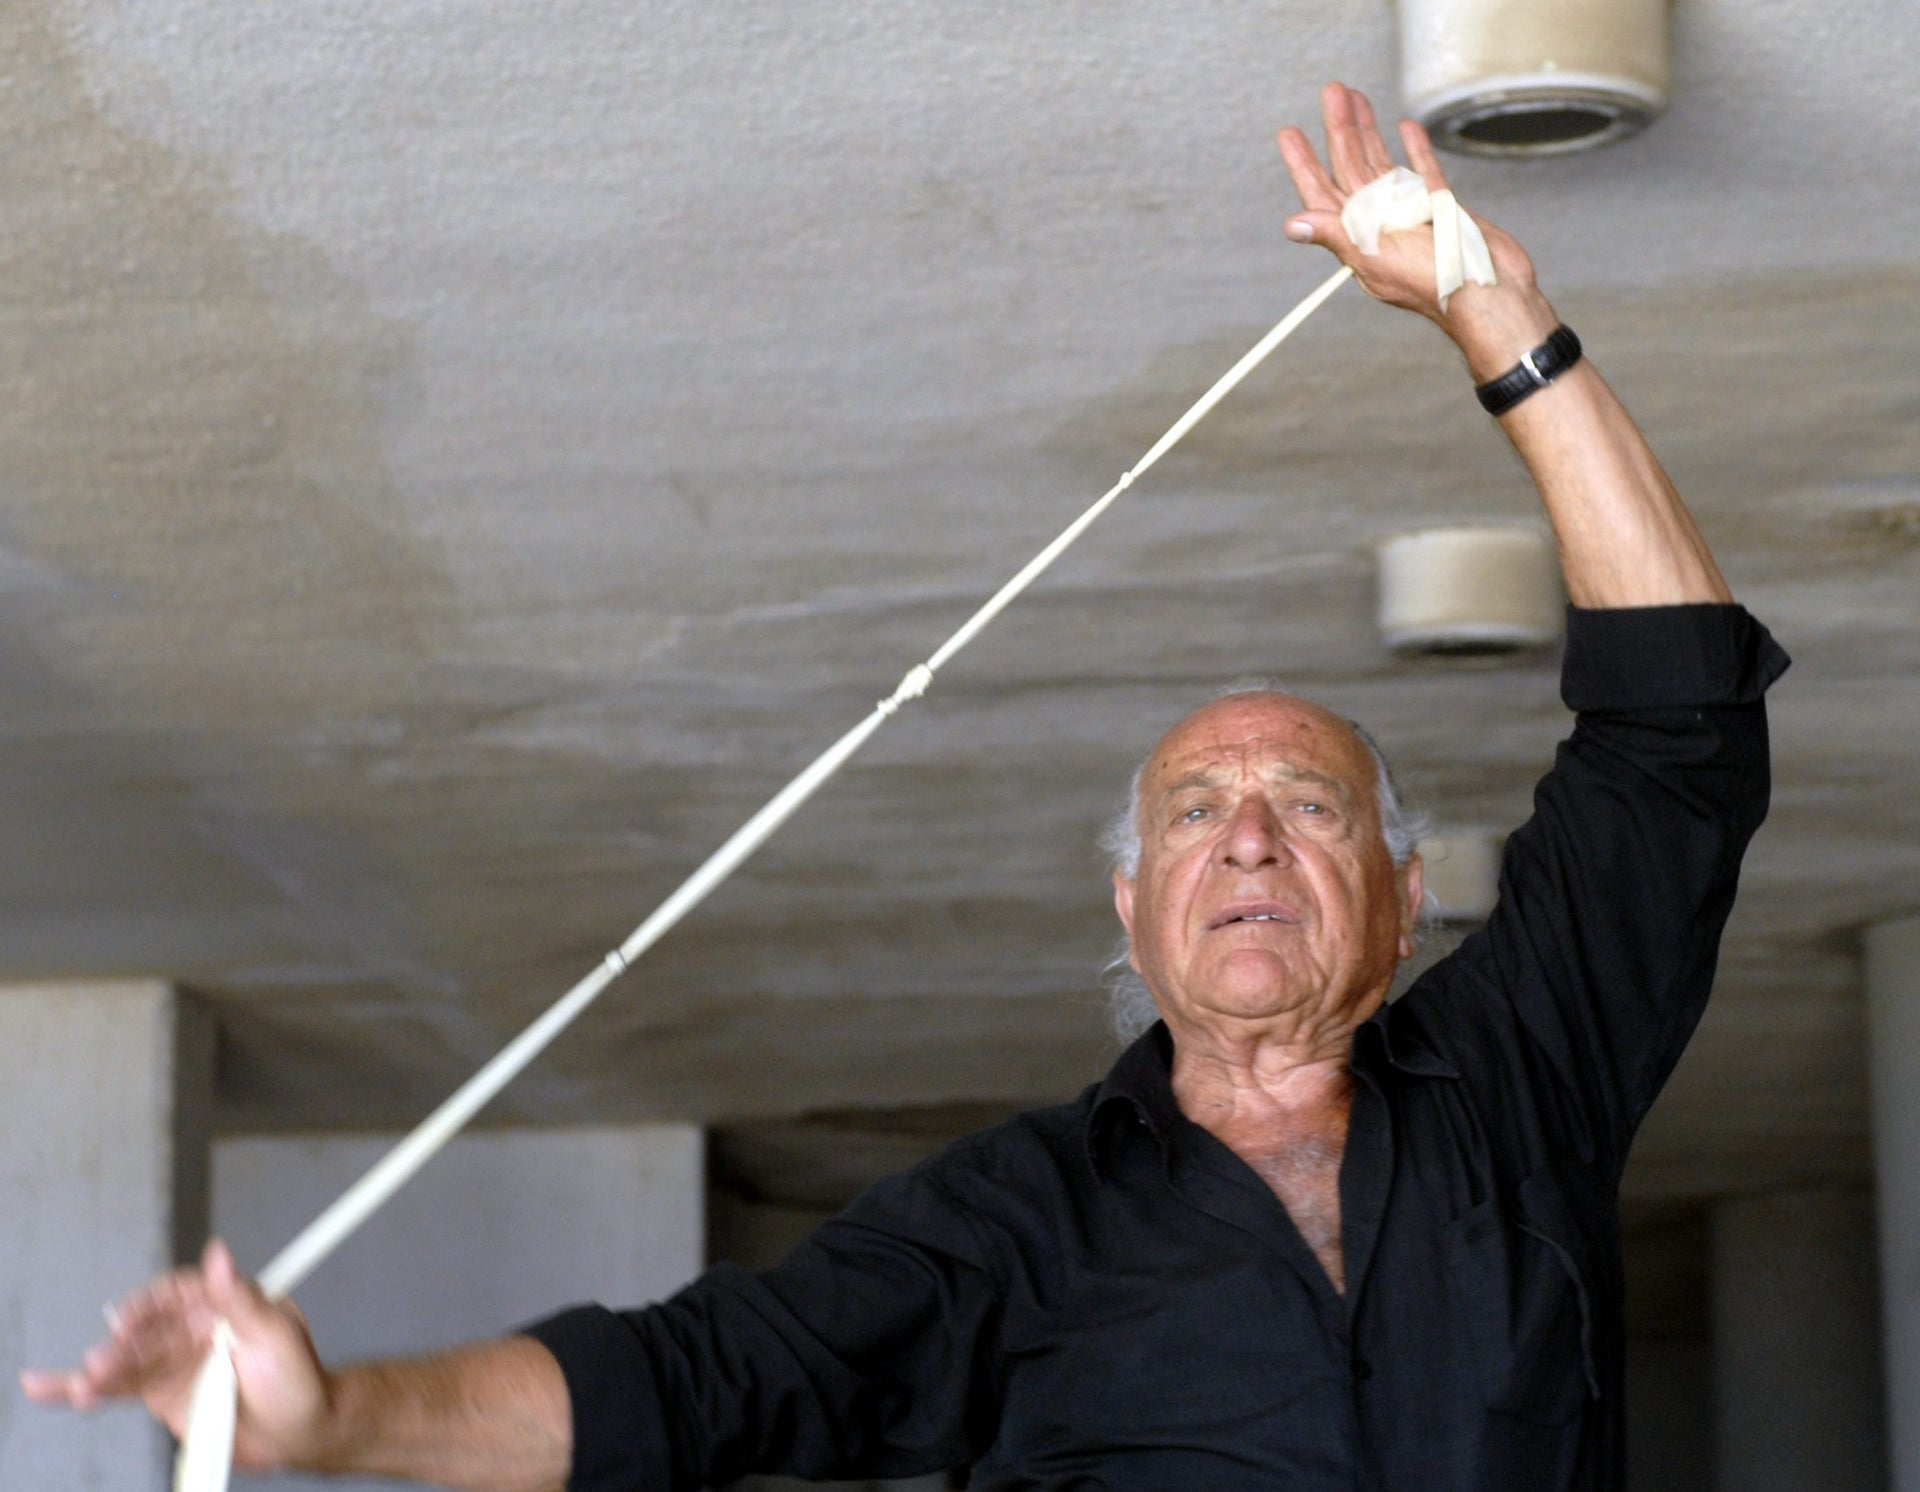 Yehuda Kedar demonstrates Vita dancing.